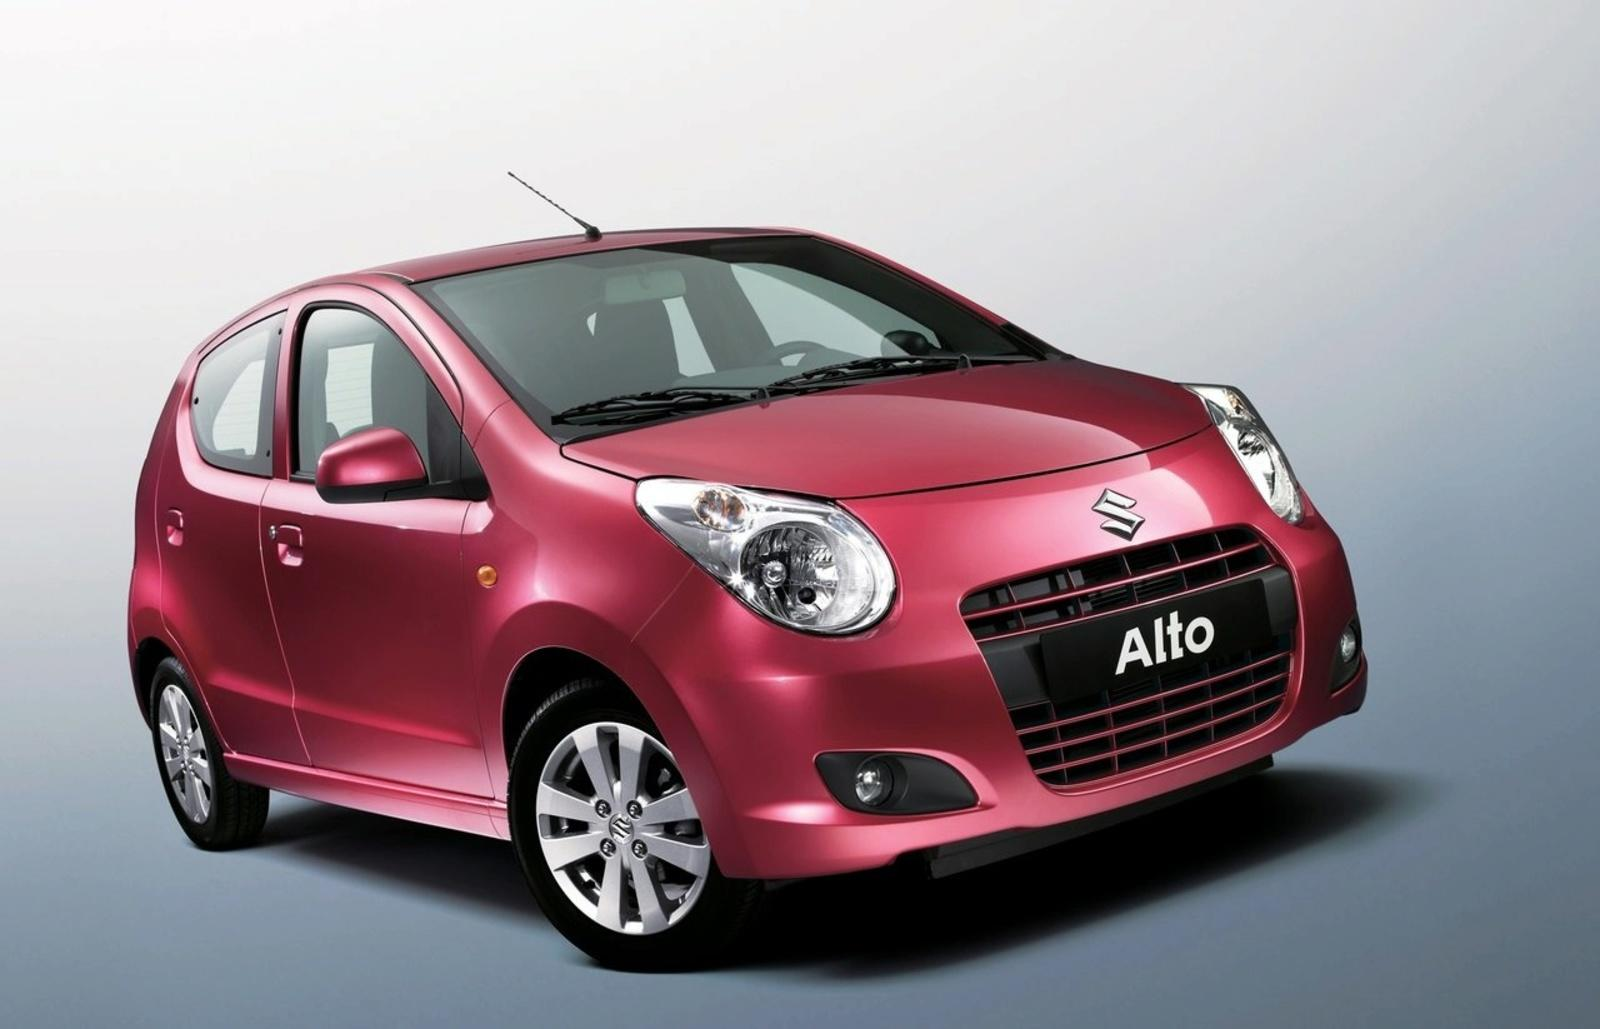 2009 suzuki alto review top speed. Black Bedroom Furniture Sets. Home Design Ideas